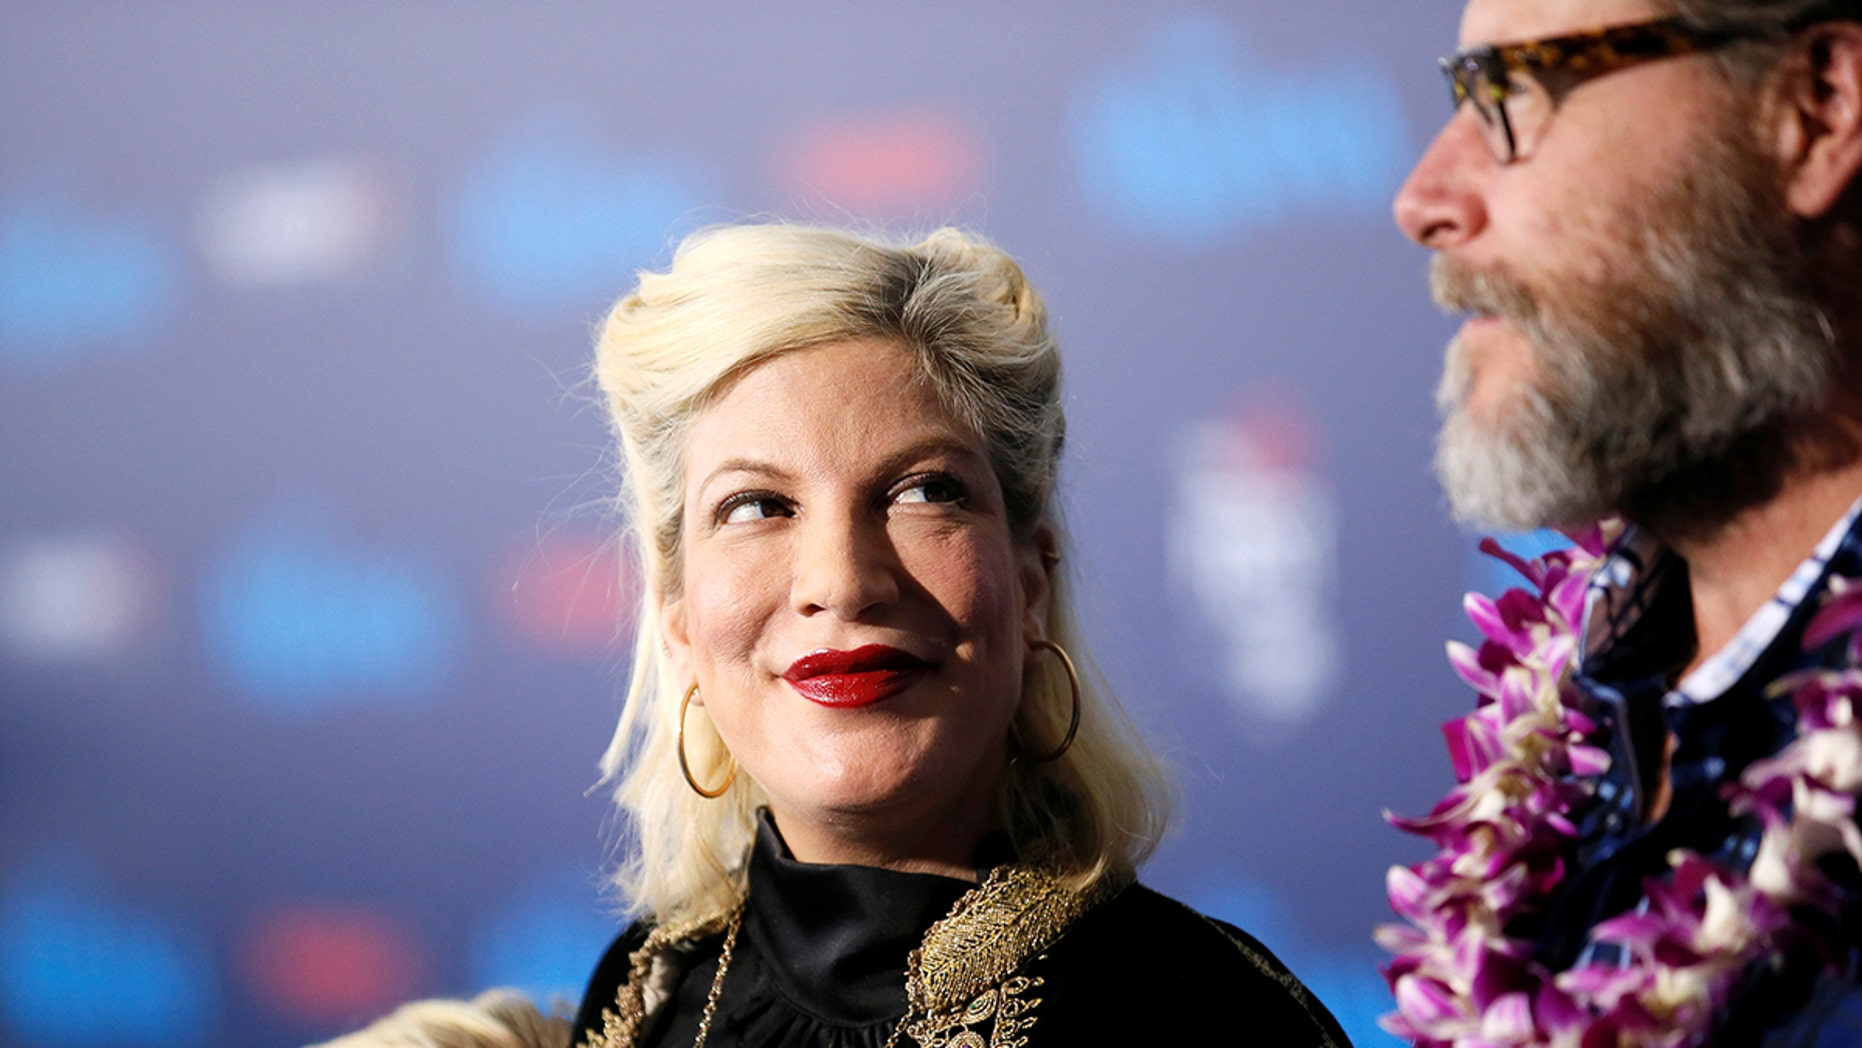 """Actor Tori Spelling and husband Dean McDermott pose at the world premiere of Walt Disney Animation Studios' """"Moana"""" as a part of AFI Fest in Hollywood, California, Nov. 14, 2016."""